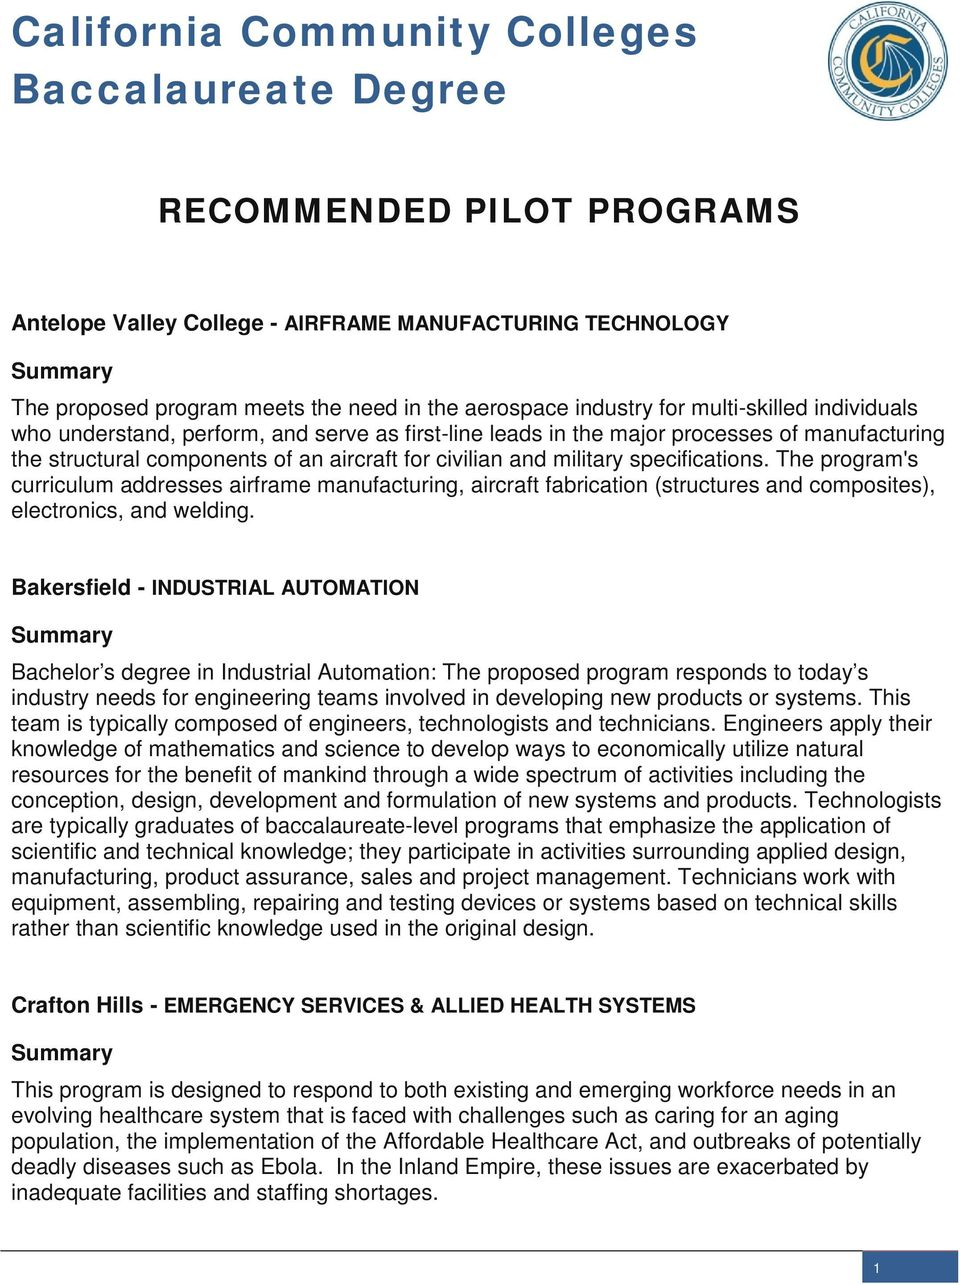 specifications. The program's curriculum addresses airframe manufacturing, aircraft fabrication (structures and composites), electronics, and welding.